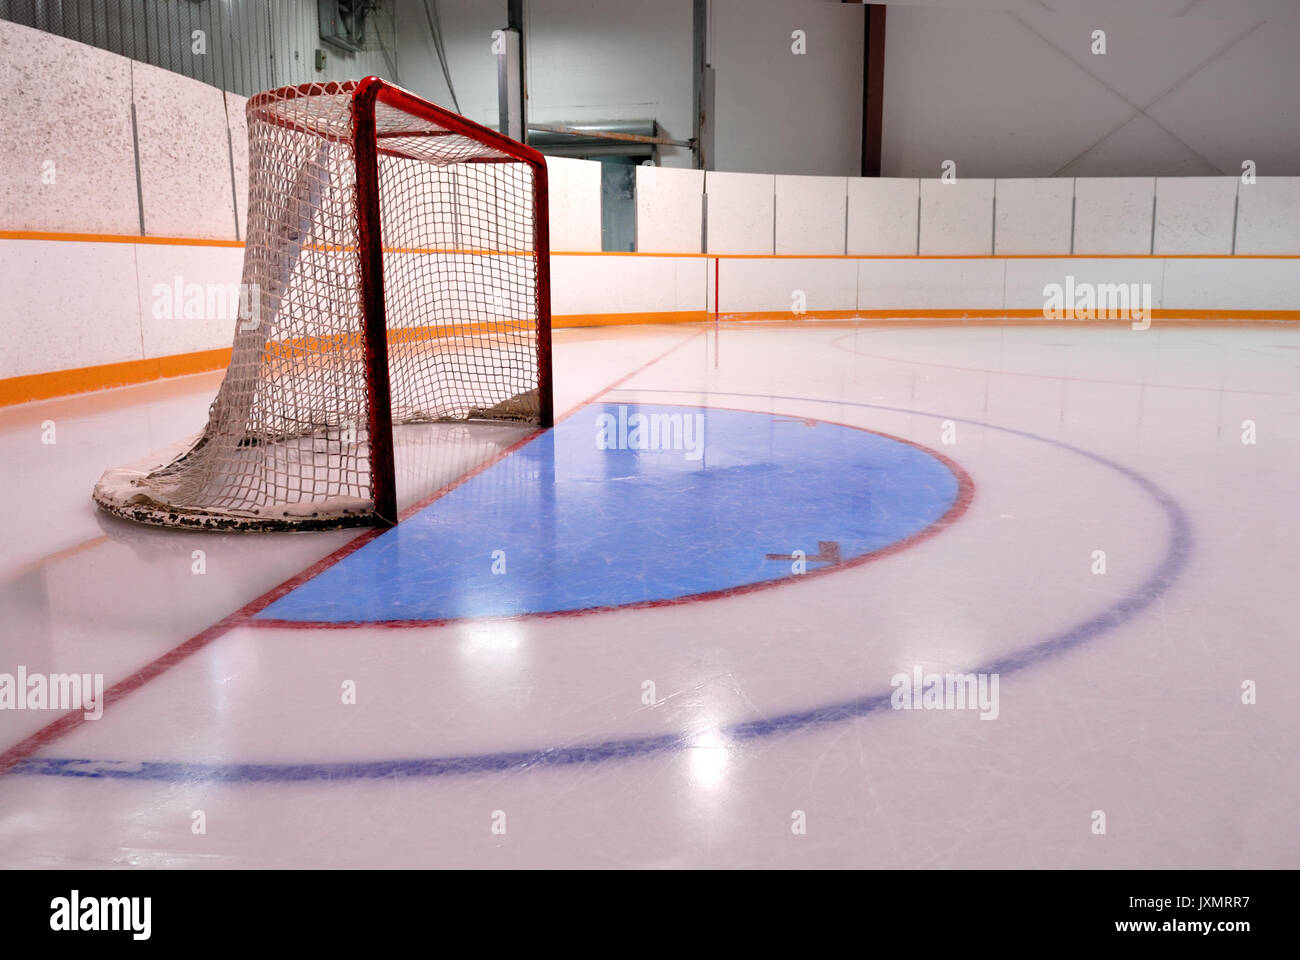 An empty  Hockey or Ringette Net and crease in the Rink with freshly cleaned ice. - Stock Image